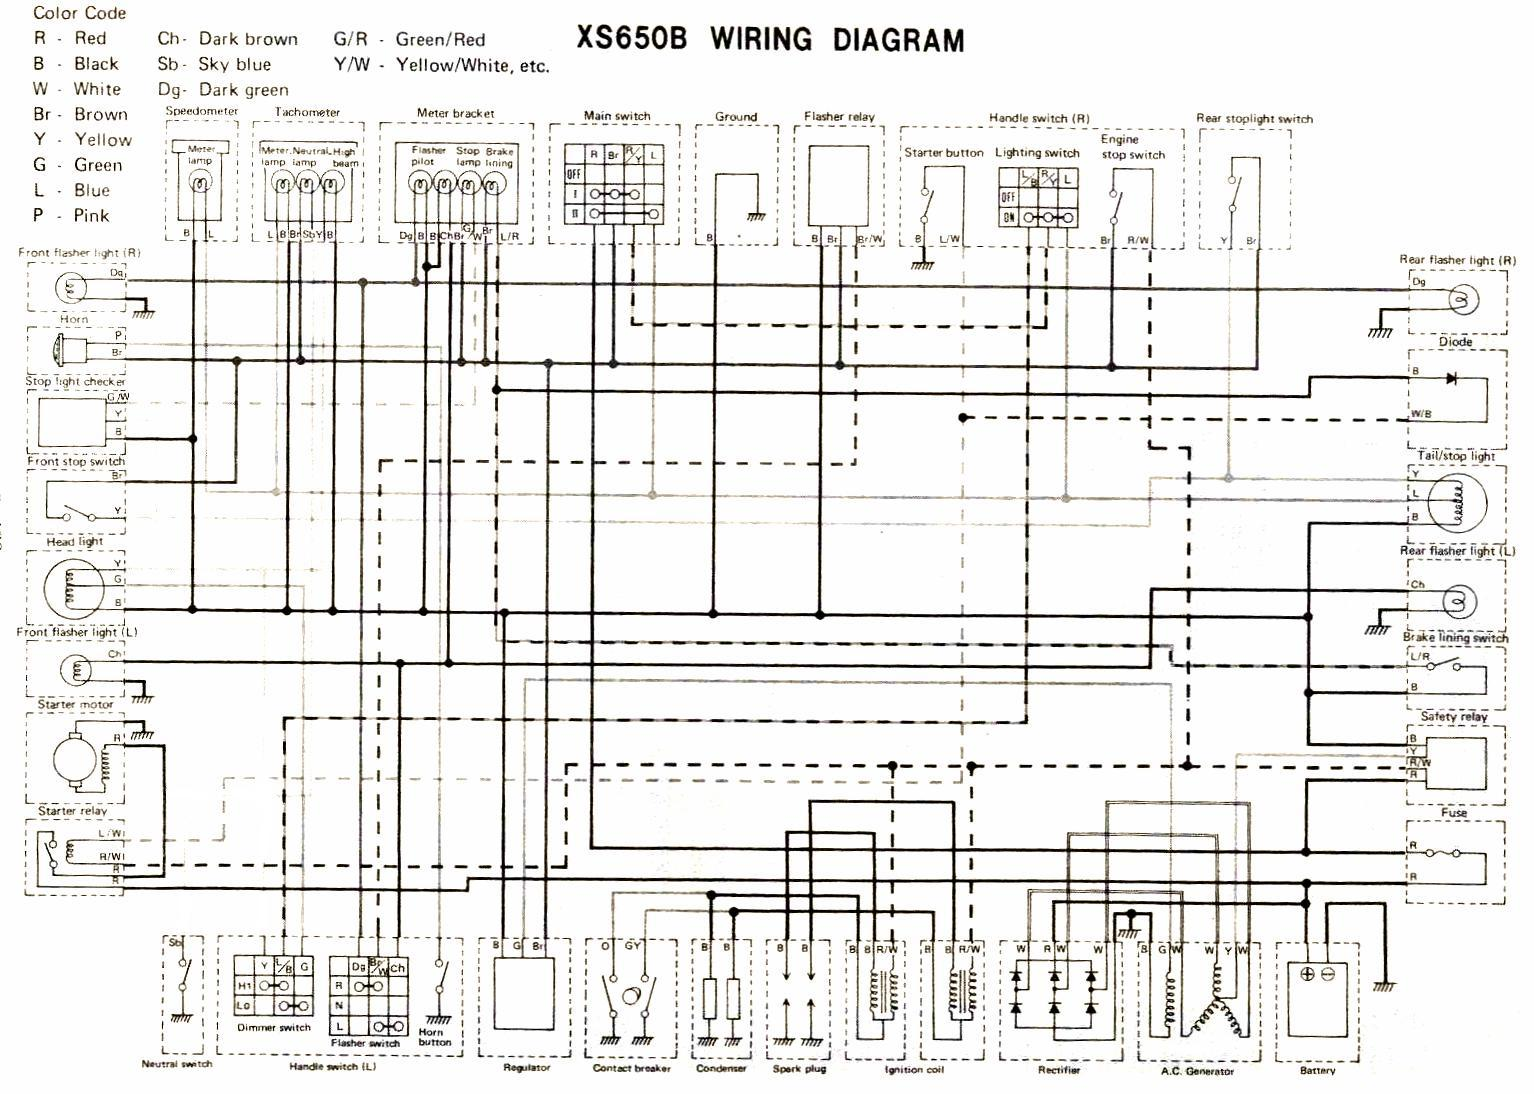 honda xl 250 wiring diagram as well yamaha xs650 wiring diagram rh autonomia co Simplified Wiring Diagram for 78 Yamaha 1100 Motorcycle XS650 Chopper Wiring Diagram